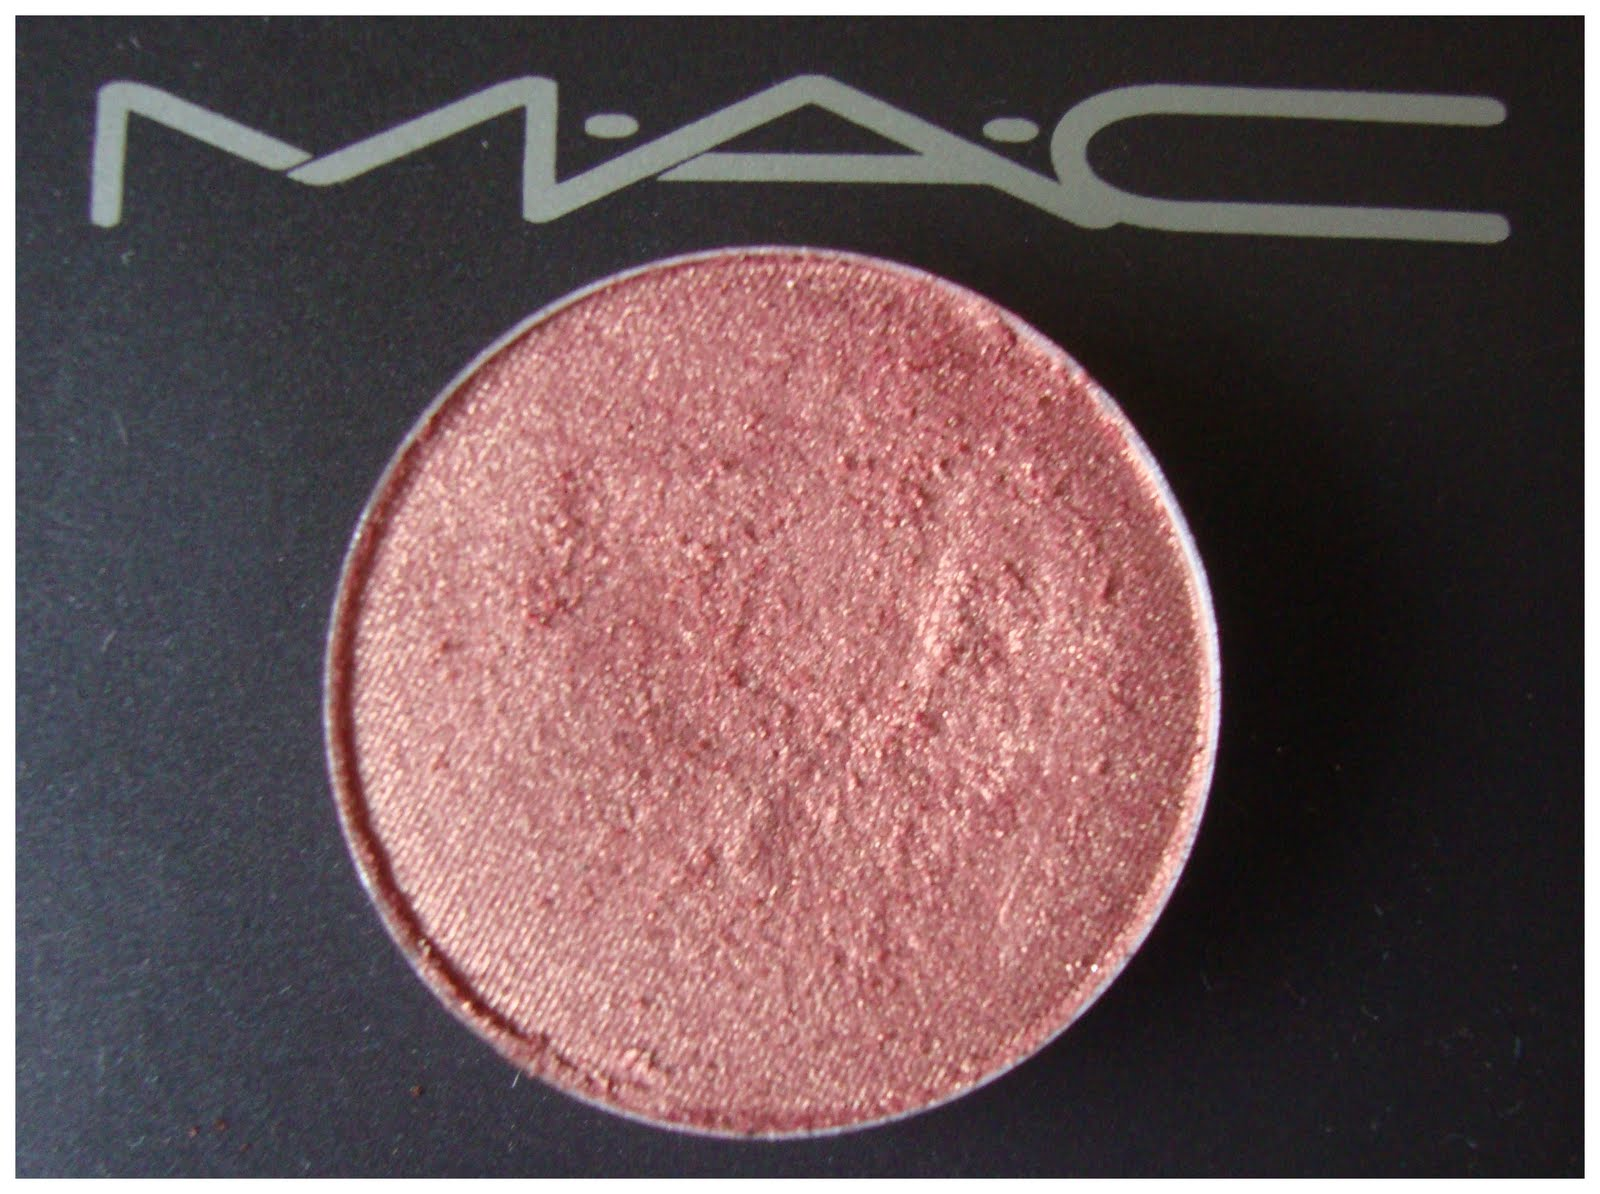 ... our precious peepers ~ MAC Expensive Pink eyeshadow, Photos, Swatches